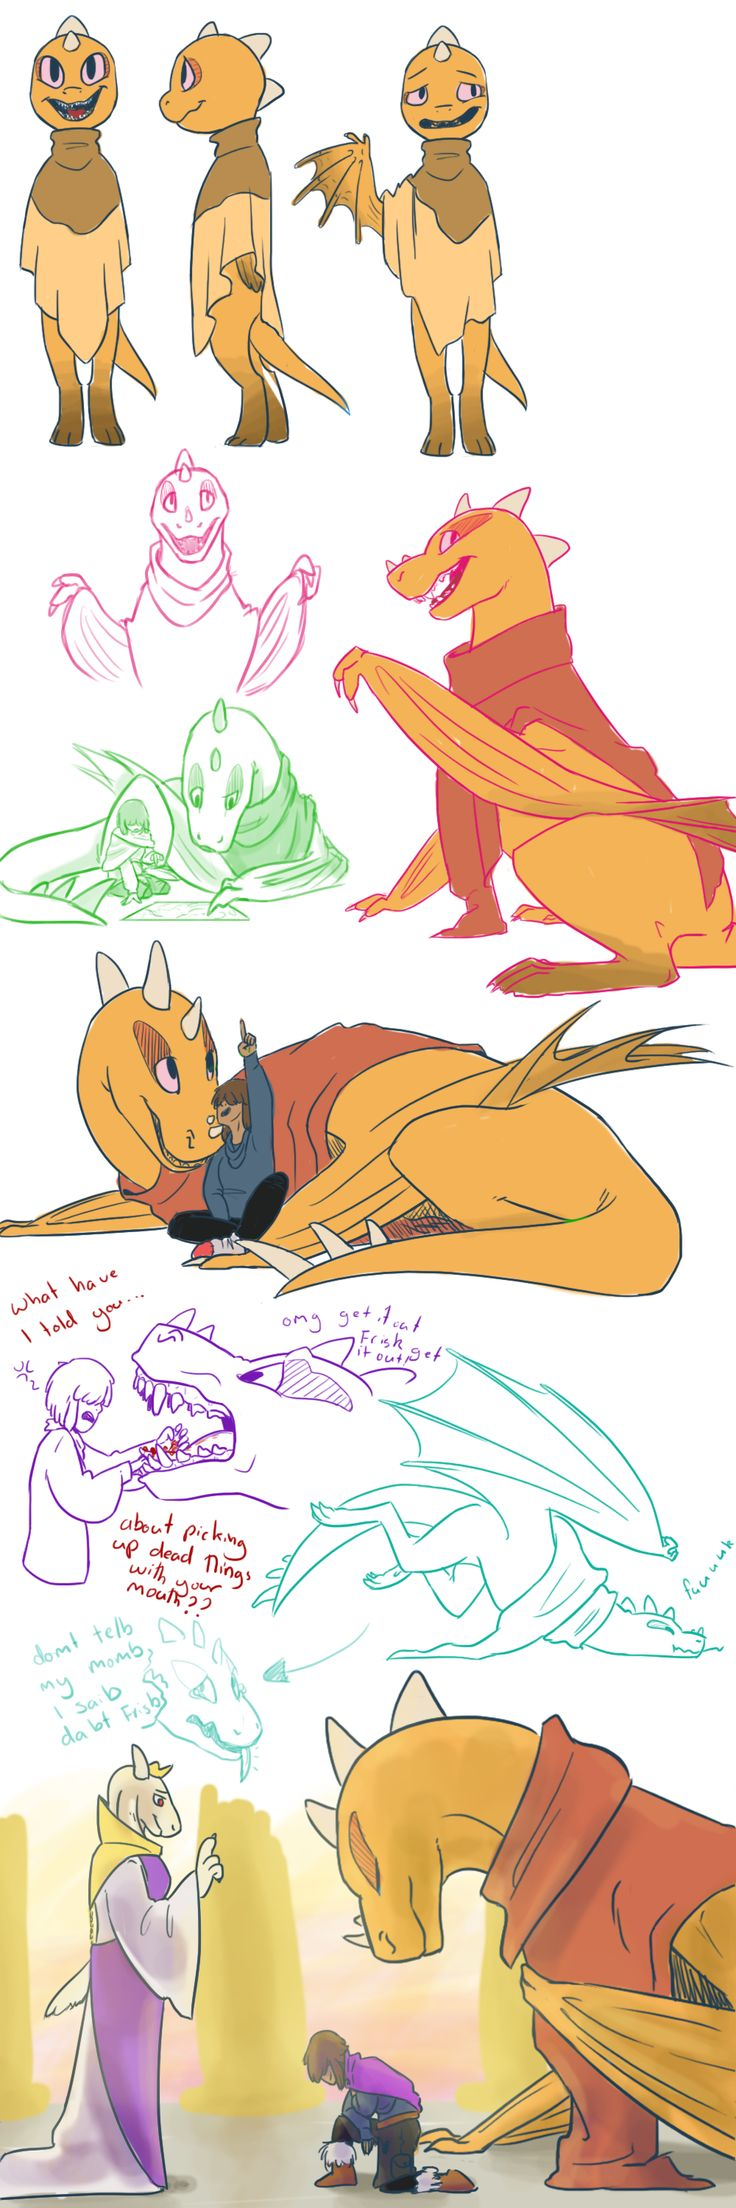 Undertale sketches_001 by QueensDaughters on DeviantArt